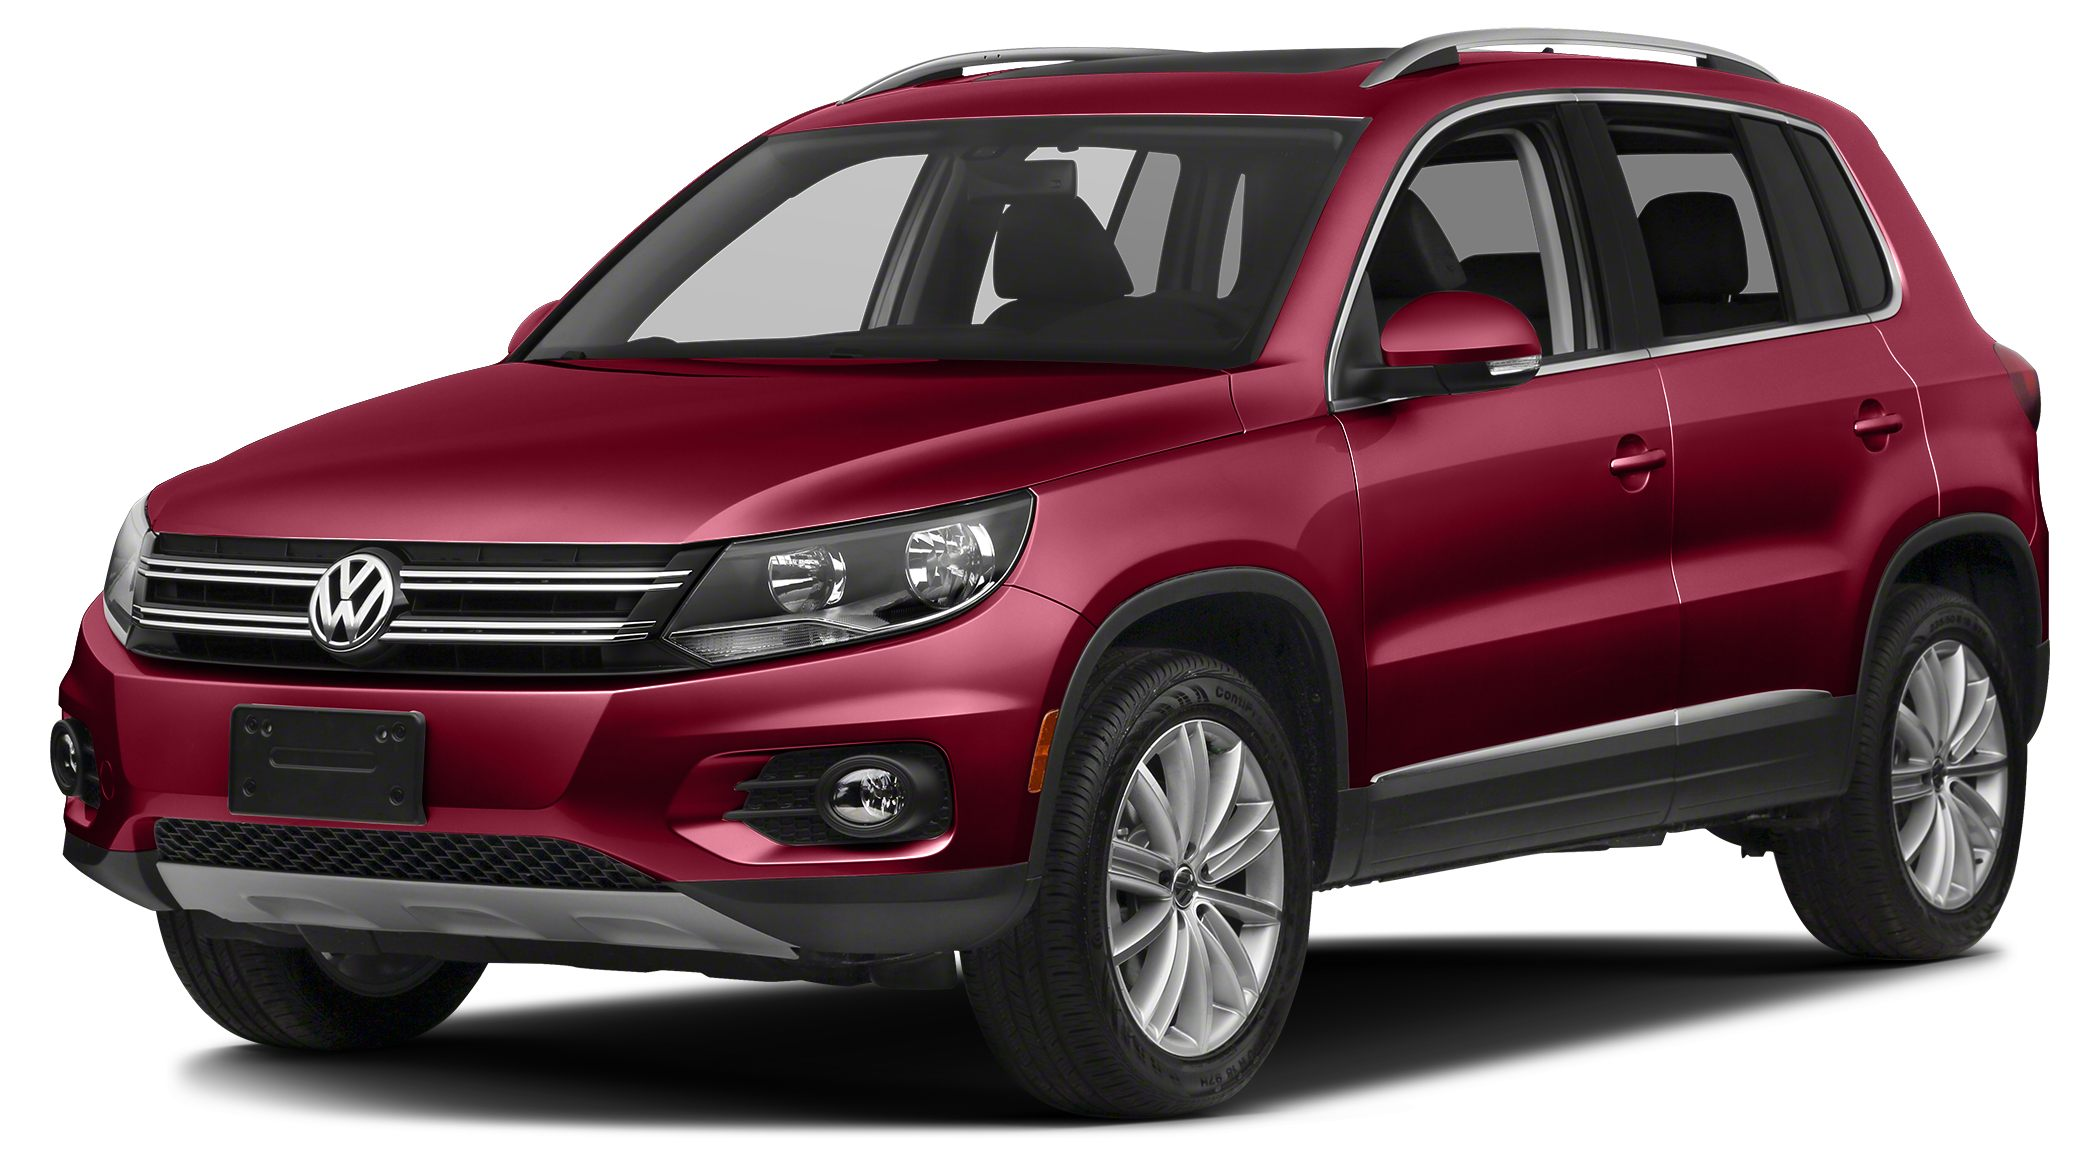 2016 Volkswagen Tiguan S The Tiguan is everything you want in a compact SUV and more It has smoot